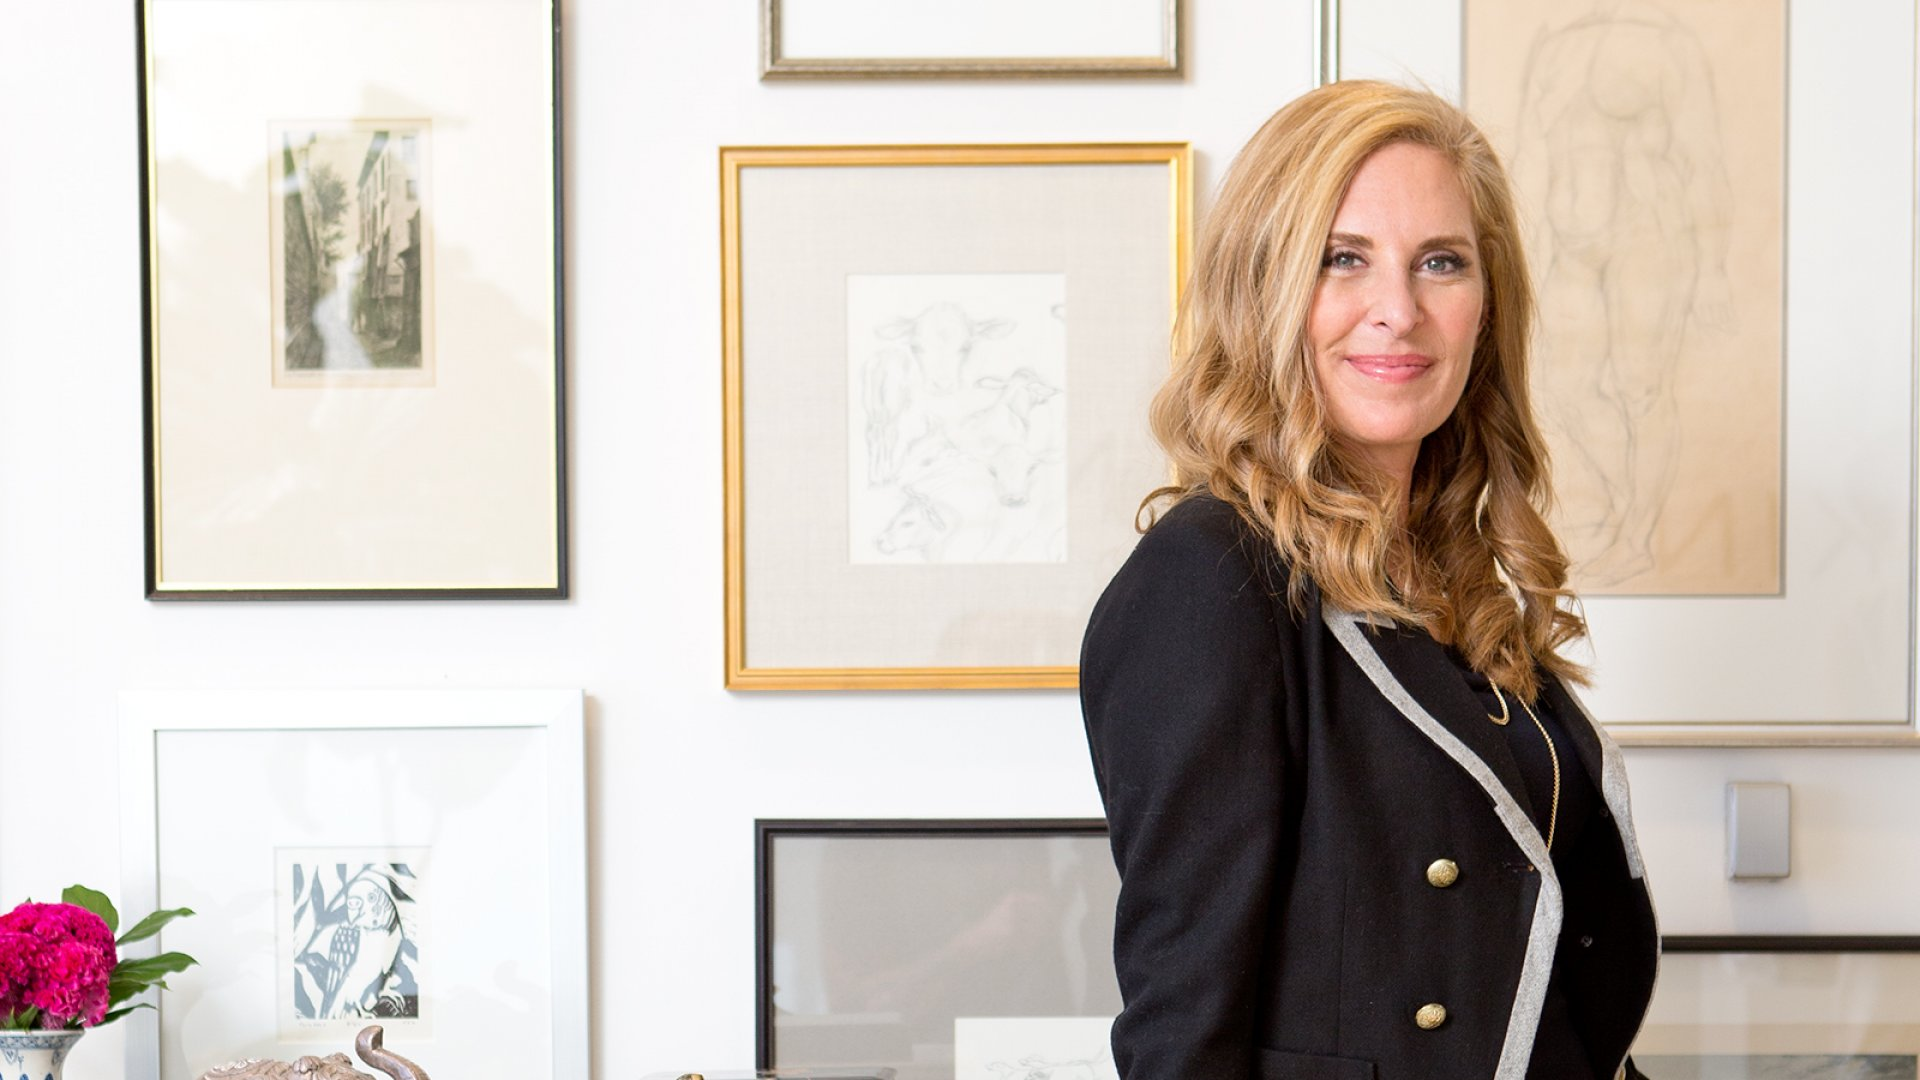 Inspired by clothing flash sales, Susan Feldman (above) and Alison Pincus translated the concept to home furnishings and accessories.